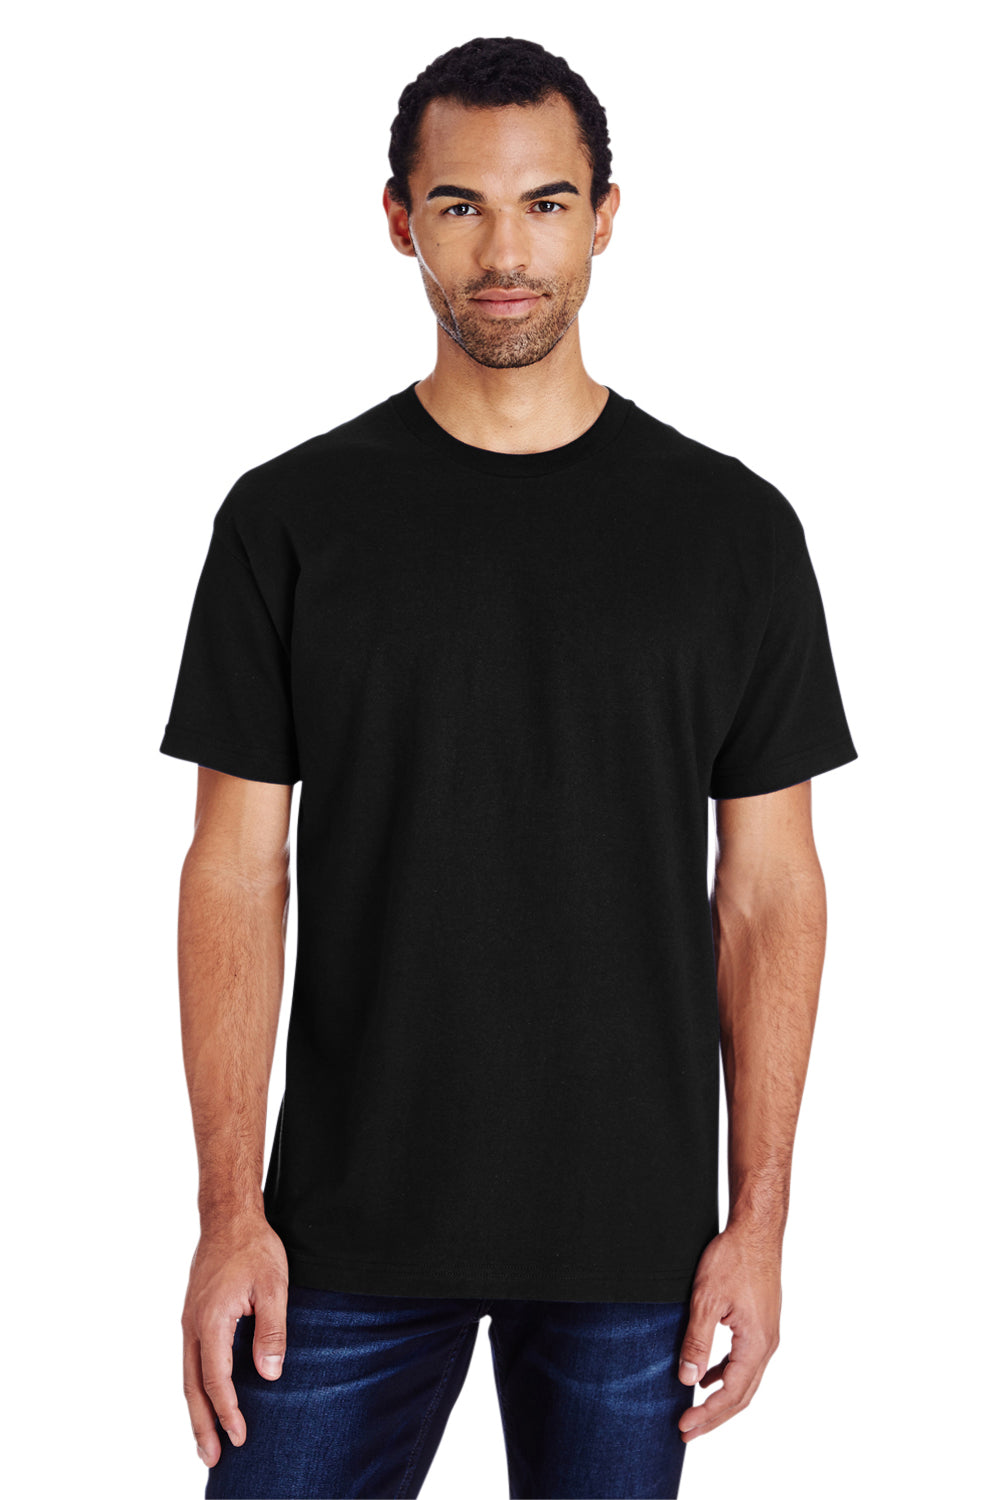 Gildan H000 Mens Hammer Short Sleeve Crewneck T-Shirt Black Front